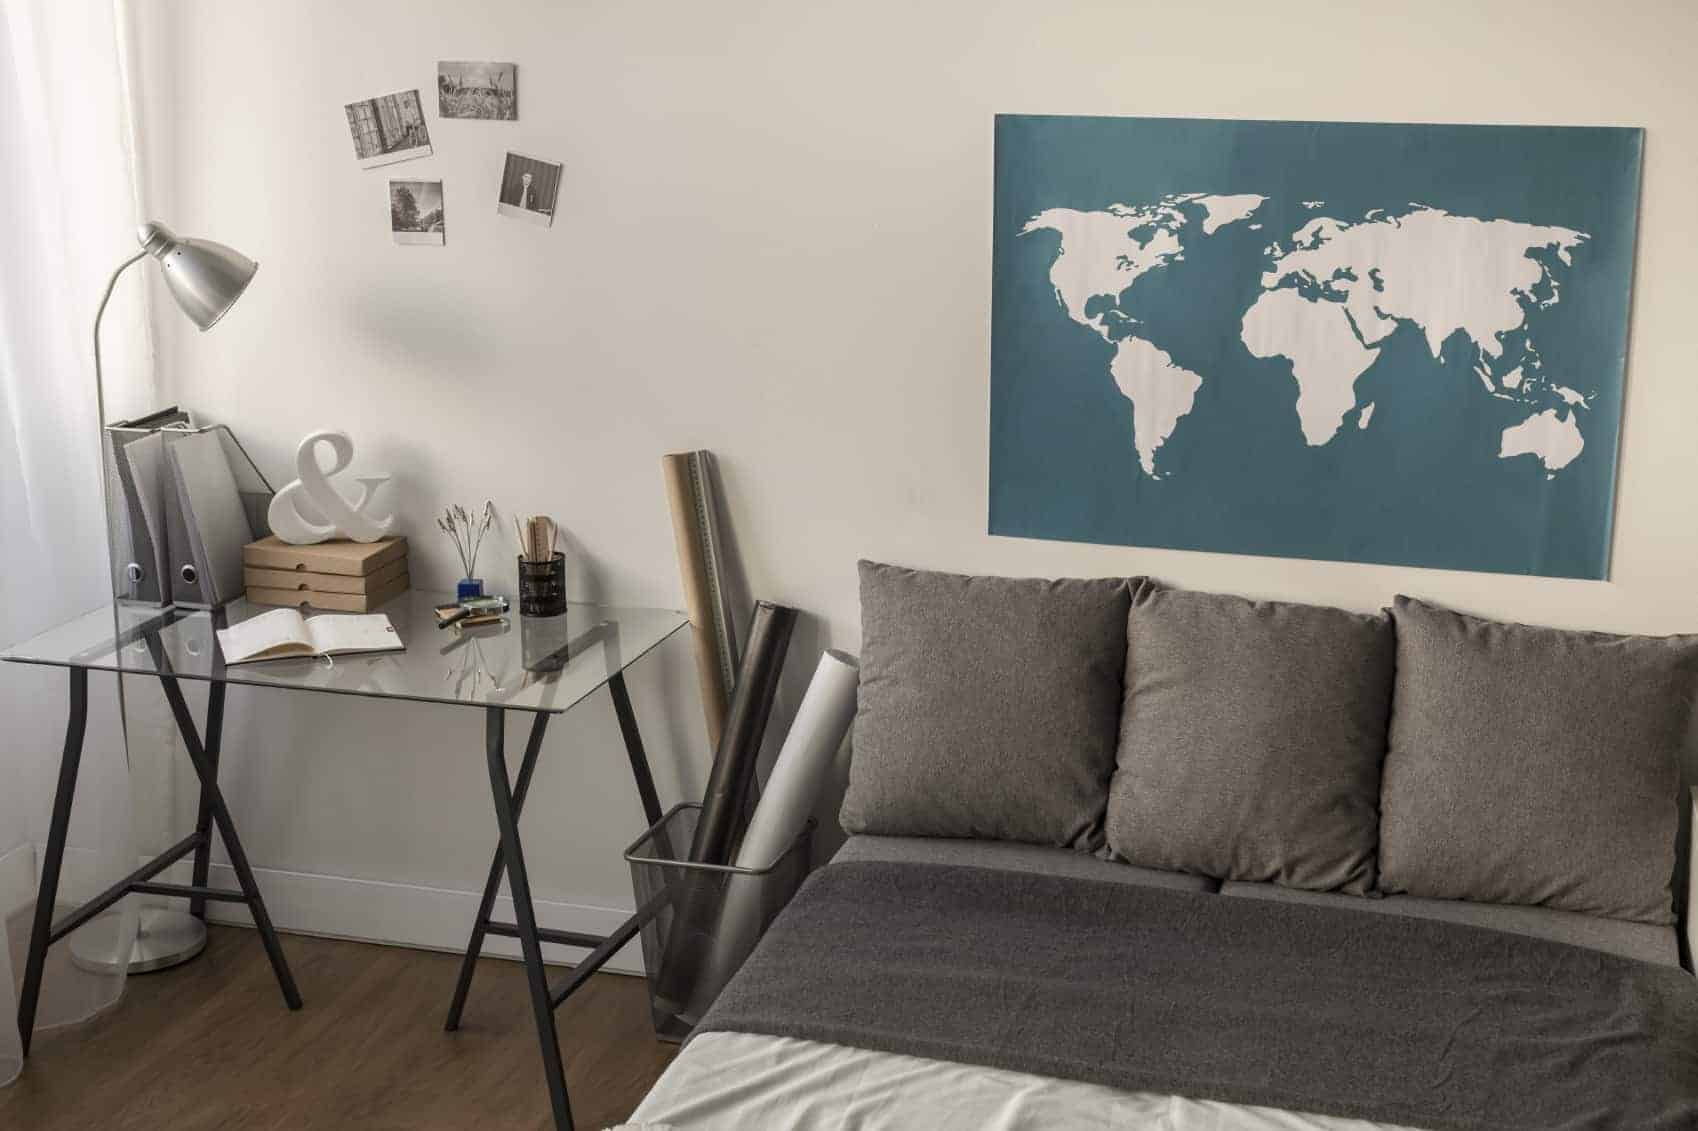 Around The World Decoration Ideas 5 Awesome Apartment Decor Ideas For Travelers Apartmentguide